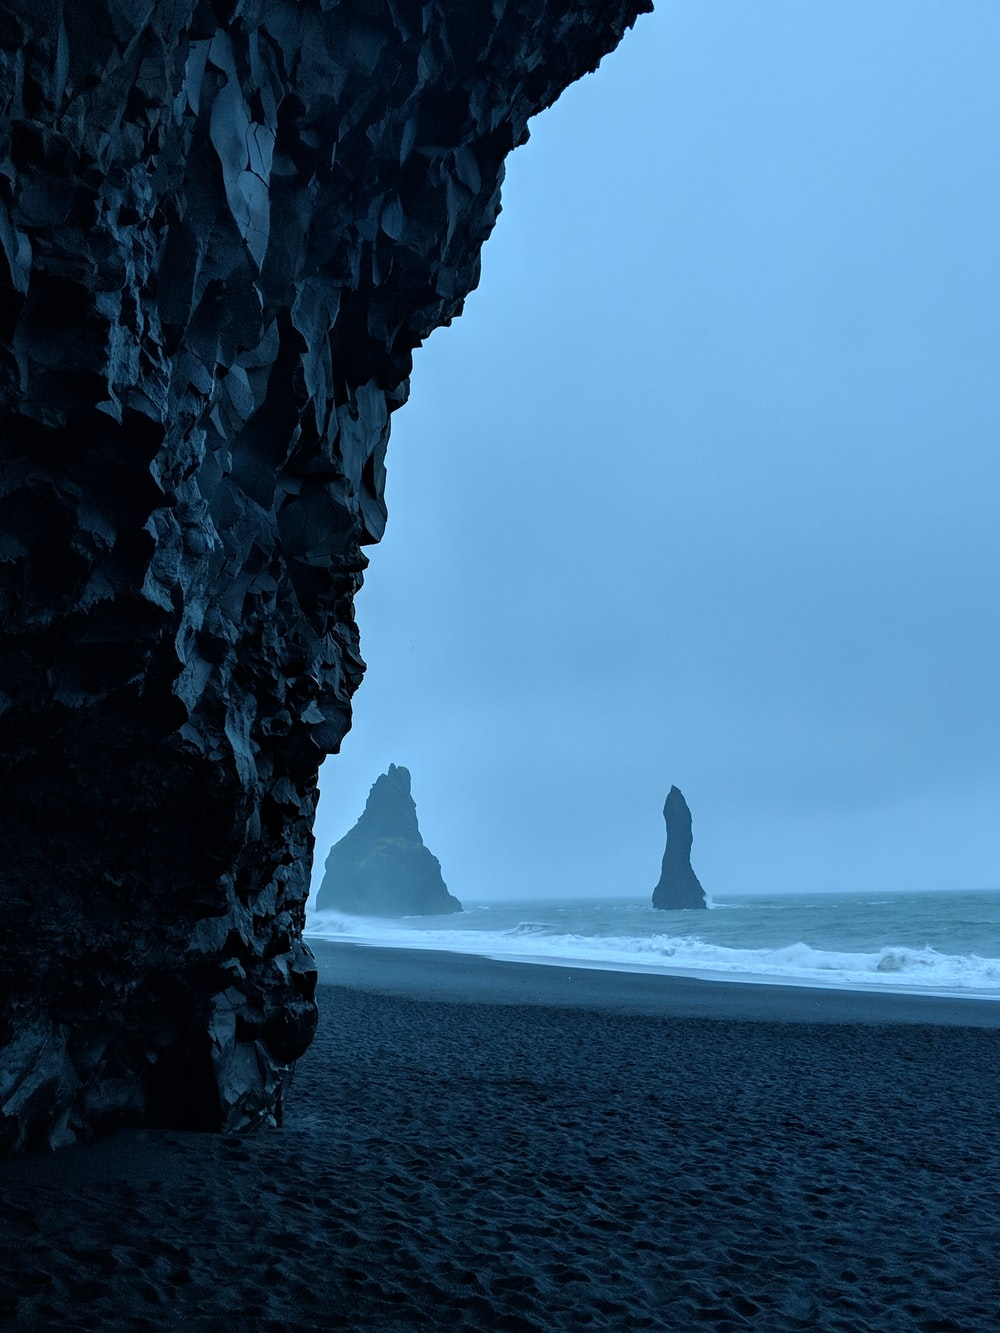 black rock formations in beach